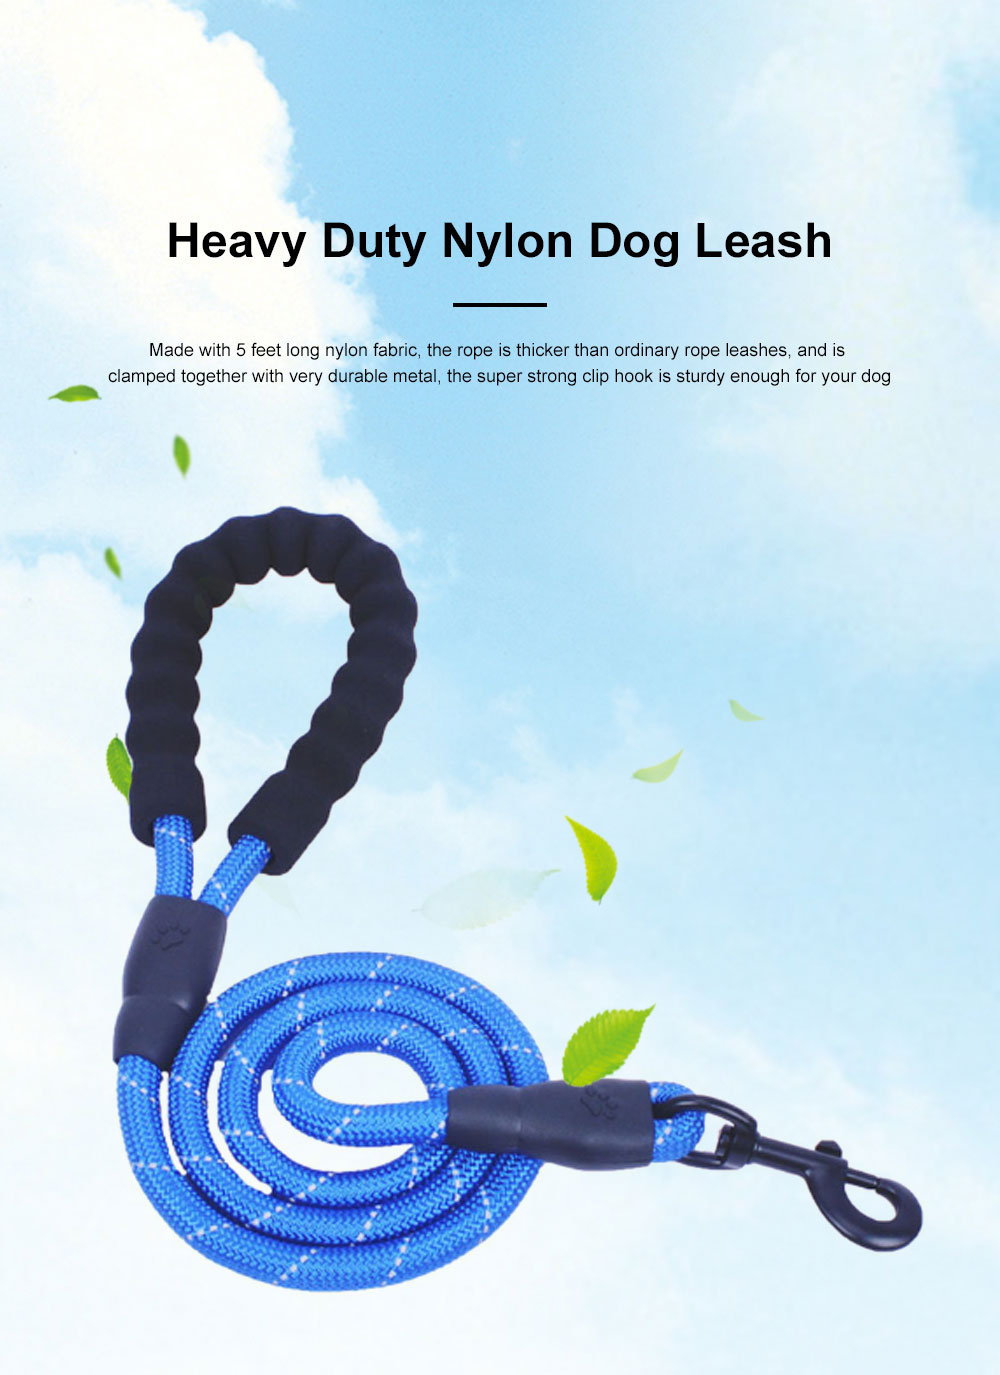 Heavy Duty Nylon Dog Leash Sturdy Pet Reflective Dog Lead with Comfortable Padded Handle Perfect for Medium and Large Dogs 0